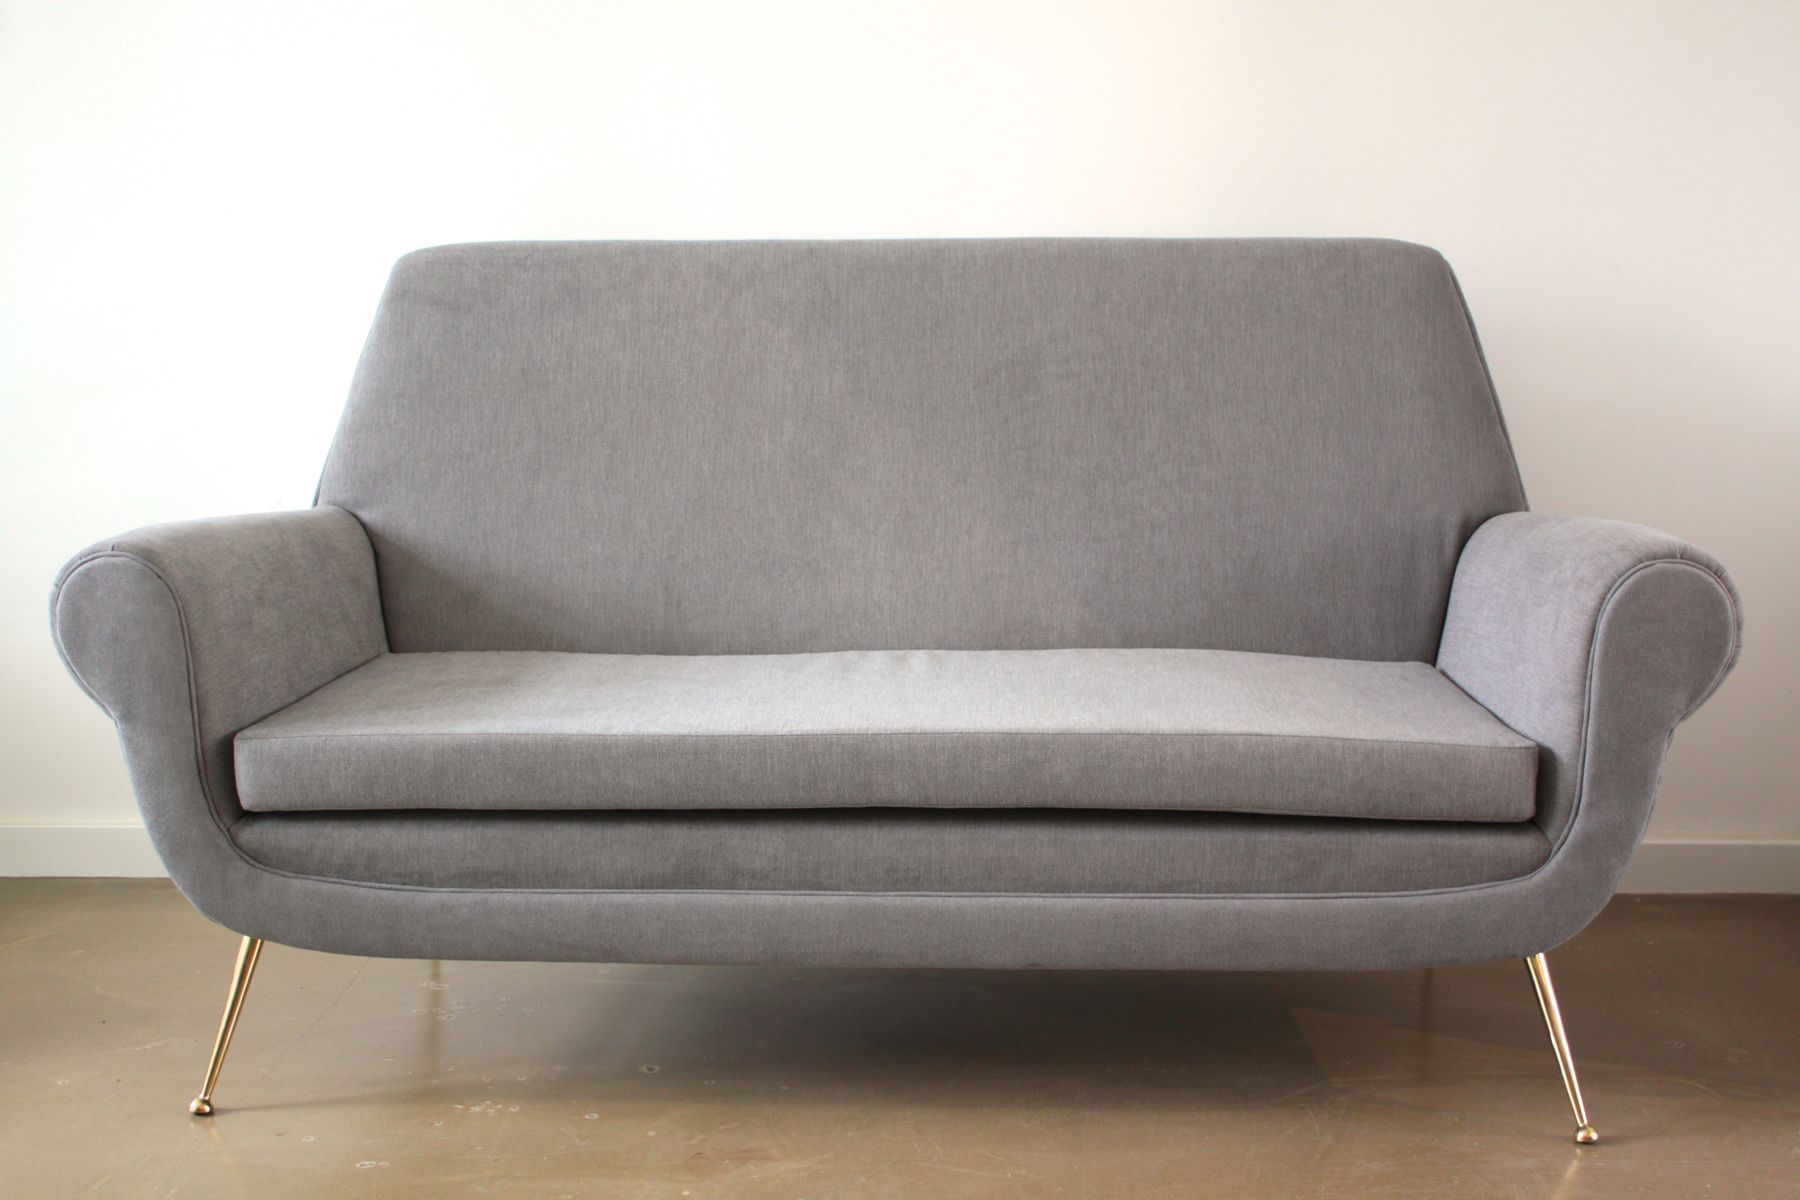 Mid Century Gray Sofa by Gigi Radice for Minotti 1950s for sale